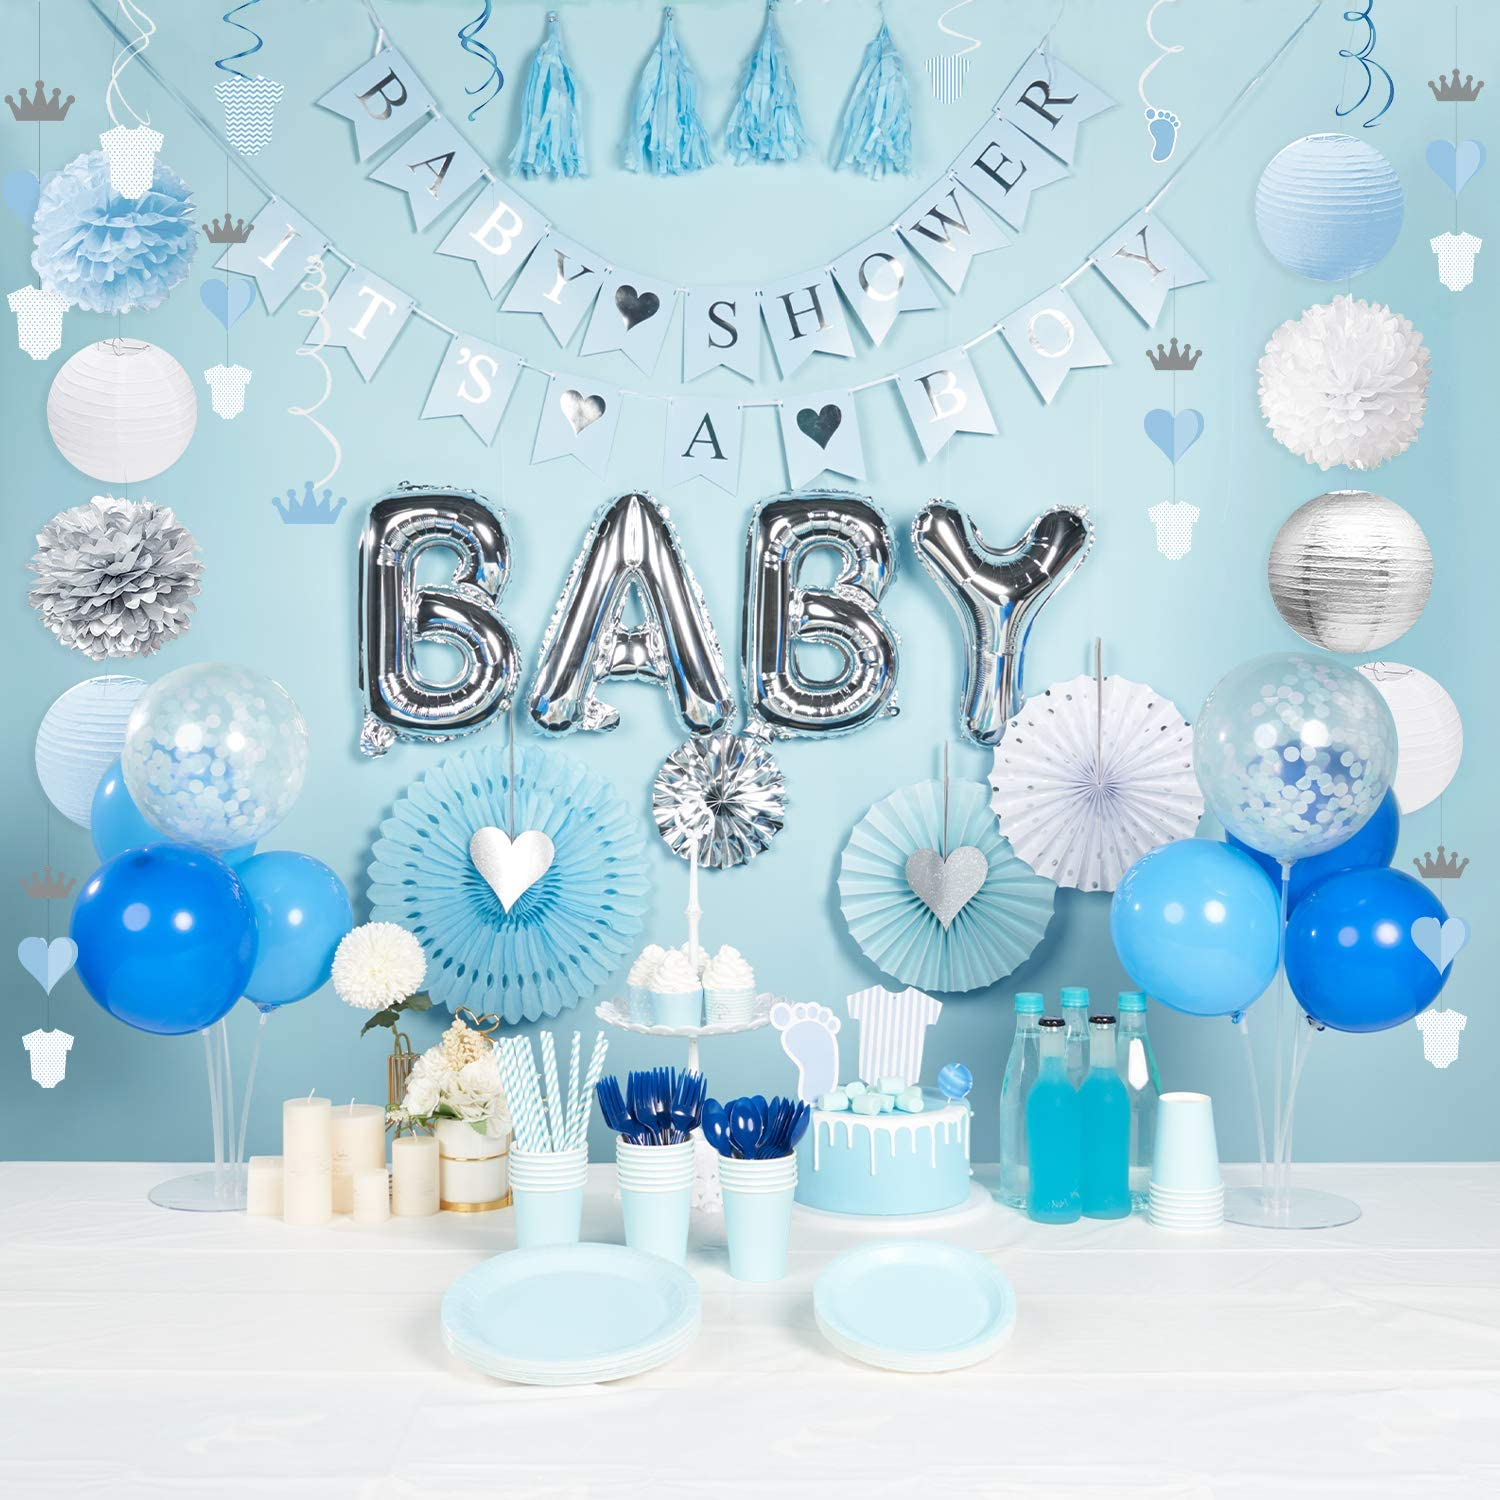 Baby Shower Decorations for Boy, Boy Baby Shower Decor Kit, 59PCS, Including Pre-Strung Banners, Balloons, Sash, Hanging Swirls, Paper Fans, Lanterns, Pom Poms, String Decorations, Tassels